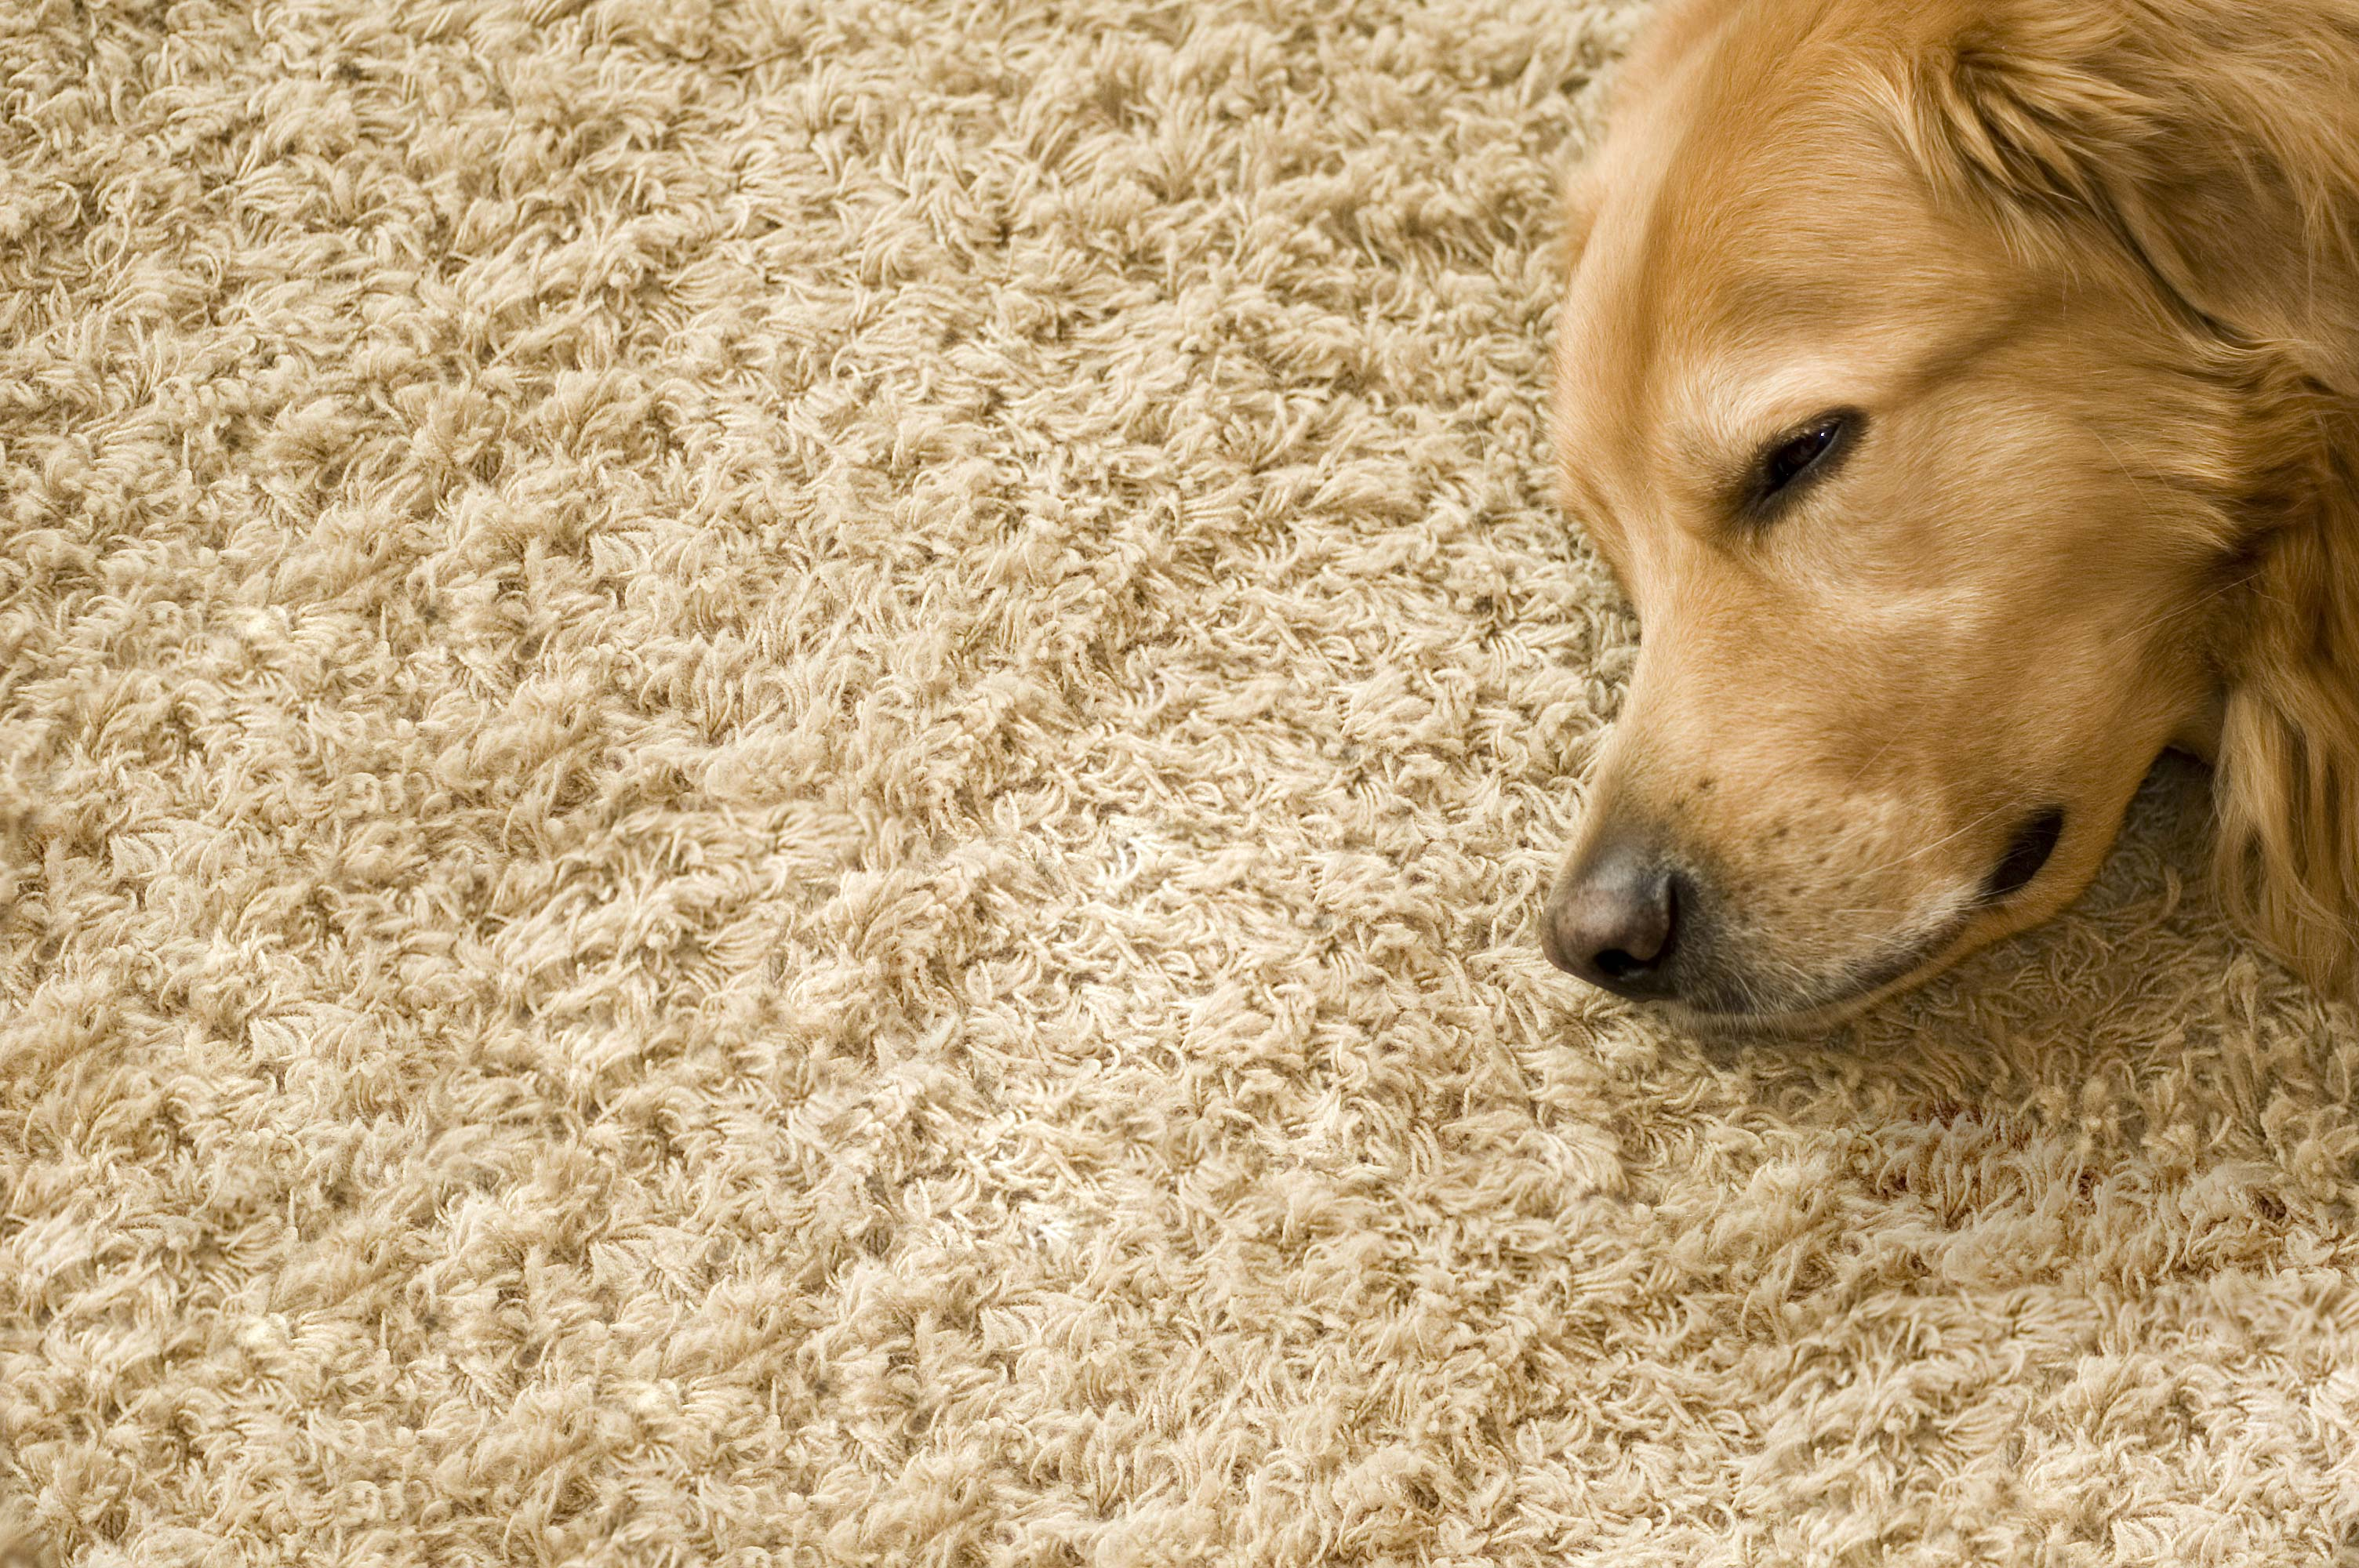 Shirley's Chem-Dry is your healthy home provider for professional carpet and upholstery cleaning in Tipton and Kokomo IN